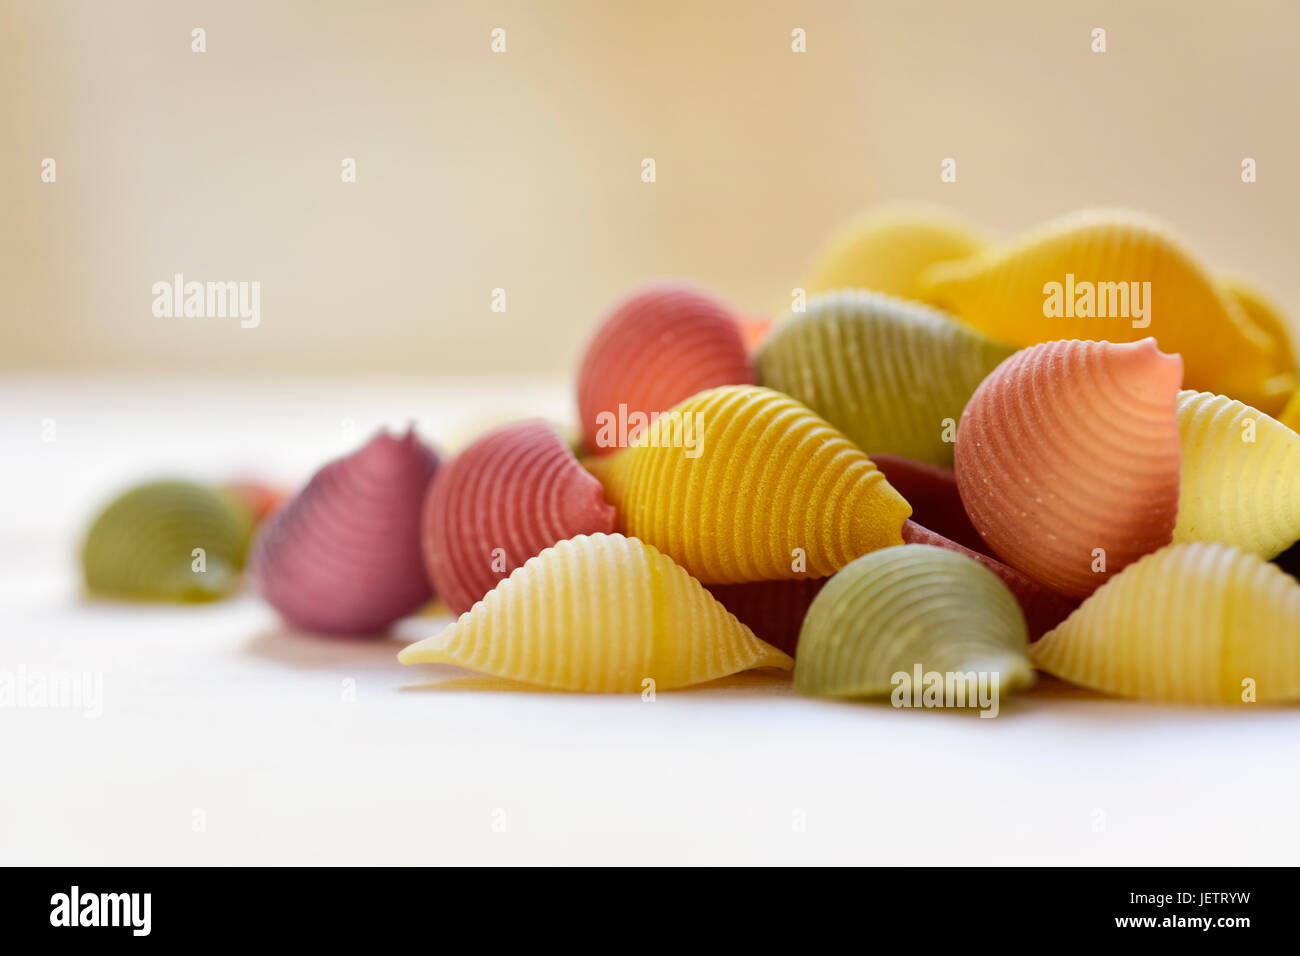 closeup of a pile of uncooked conchiglie, italian seashell pasta, with different colors: yellow as usual, red made Stock Photo